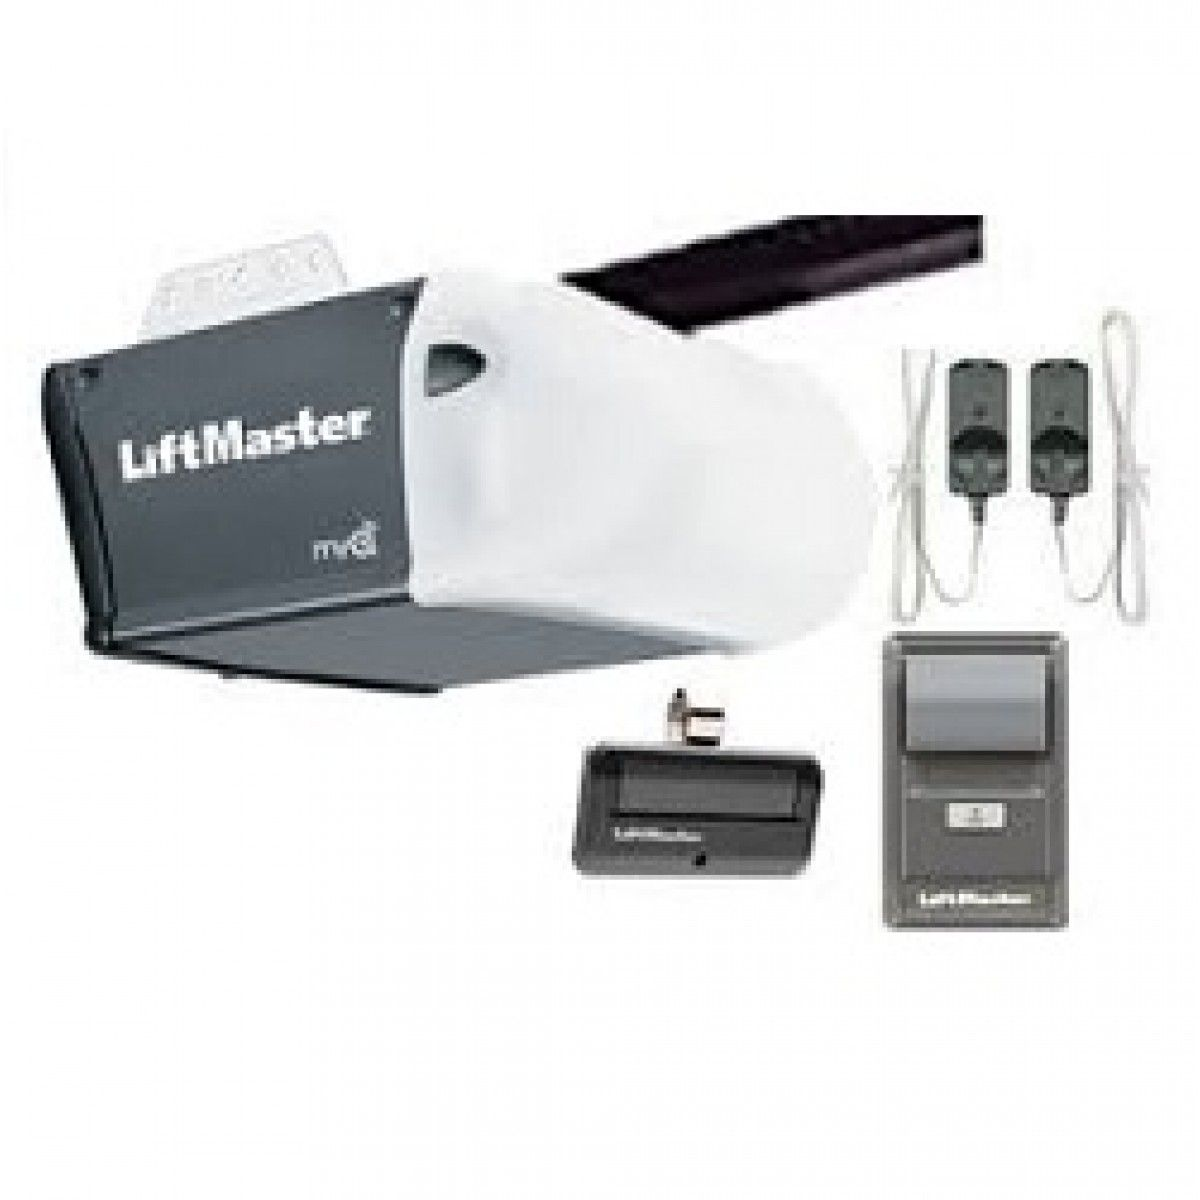 Liftmaster 8165 1 2 Hp Ac Chain Drive Garage Door Opener Liftmaster Garage Doors Garage Door Opener